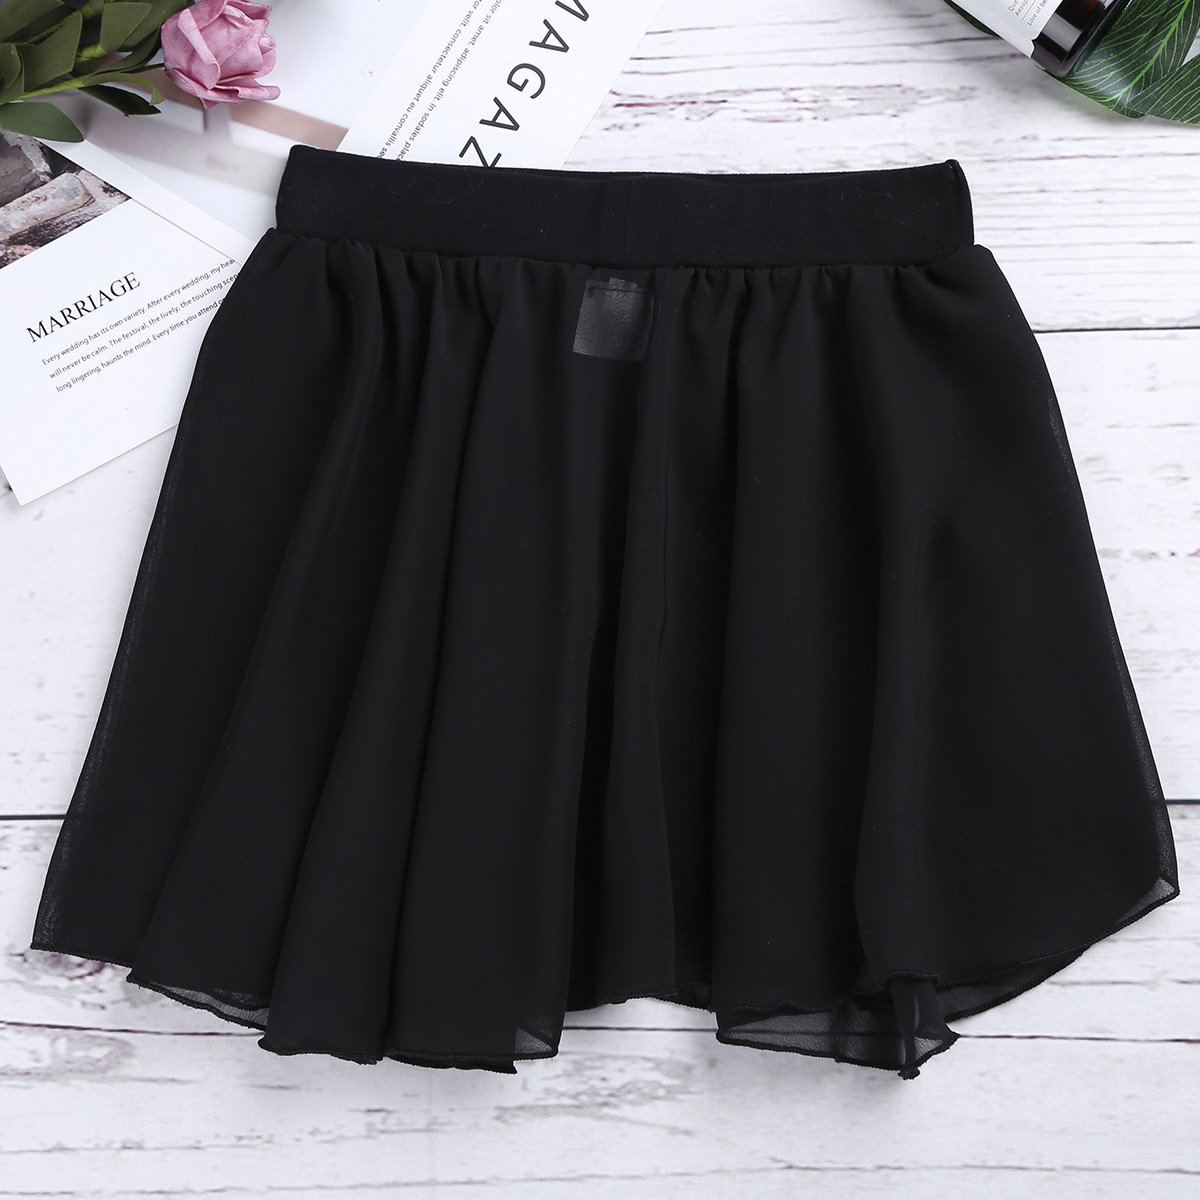 Freebily Kids Girls Dance Basic Classic Chiffon Mini Pull-On Wrap Skirt Black 7-8 by Freebily (Image #2)